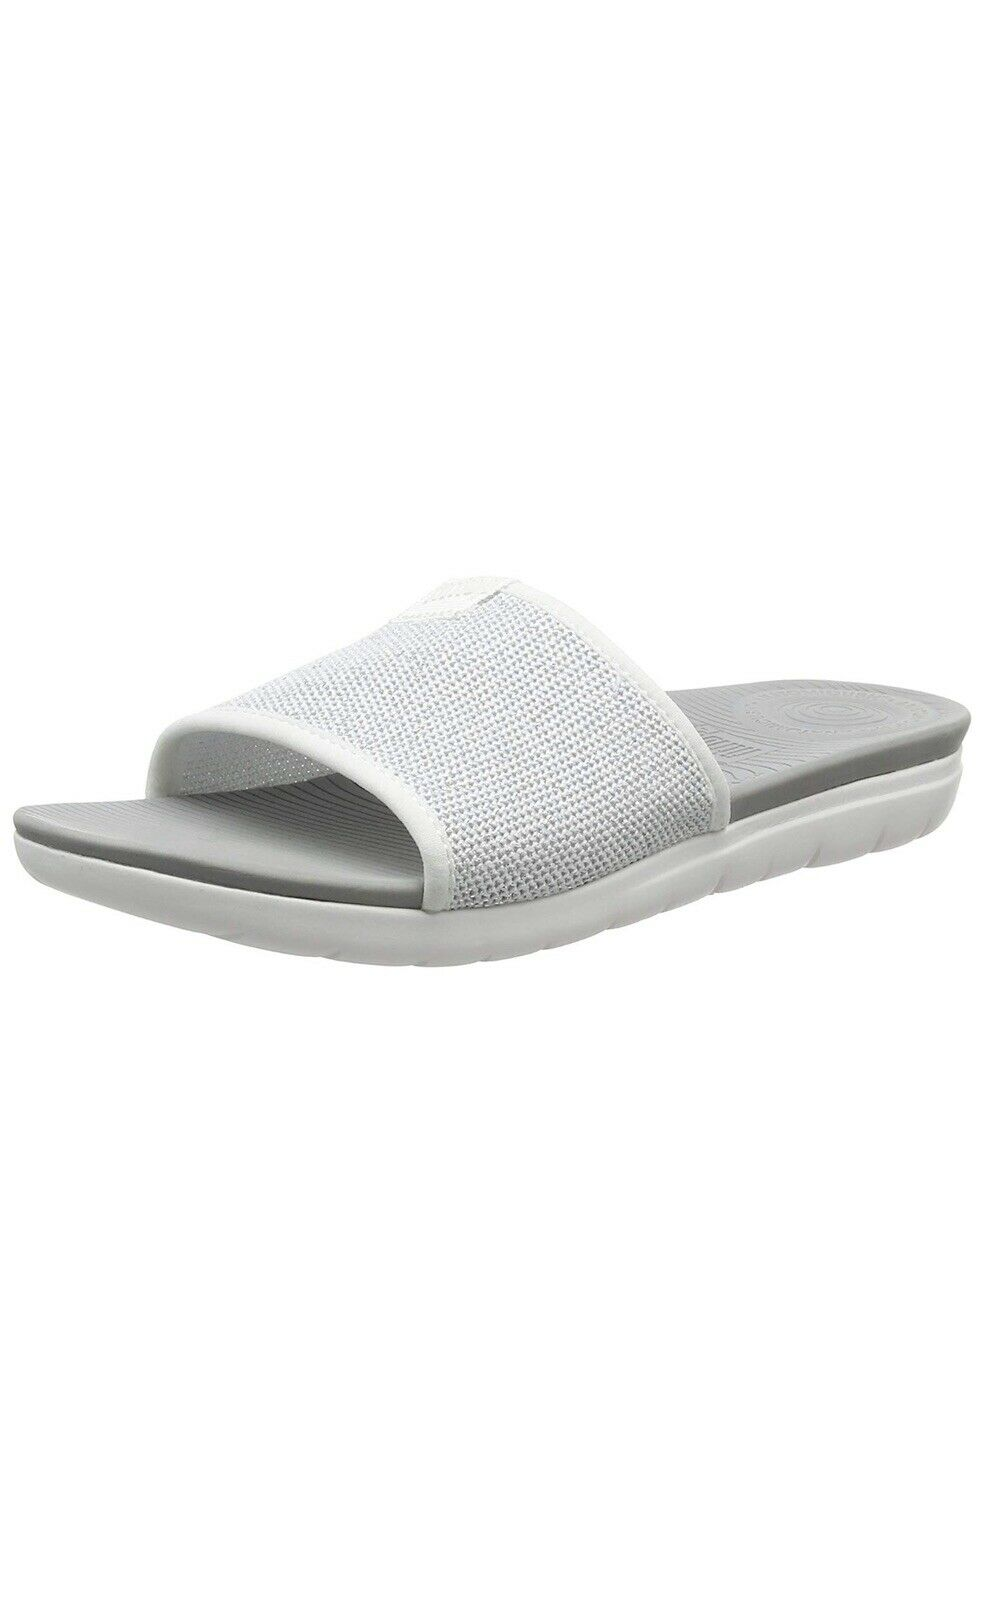 26a4a887c Women s FitFlop Uberknit Slide White silver Sandals Size UK 8 eu 42 ...